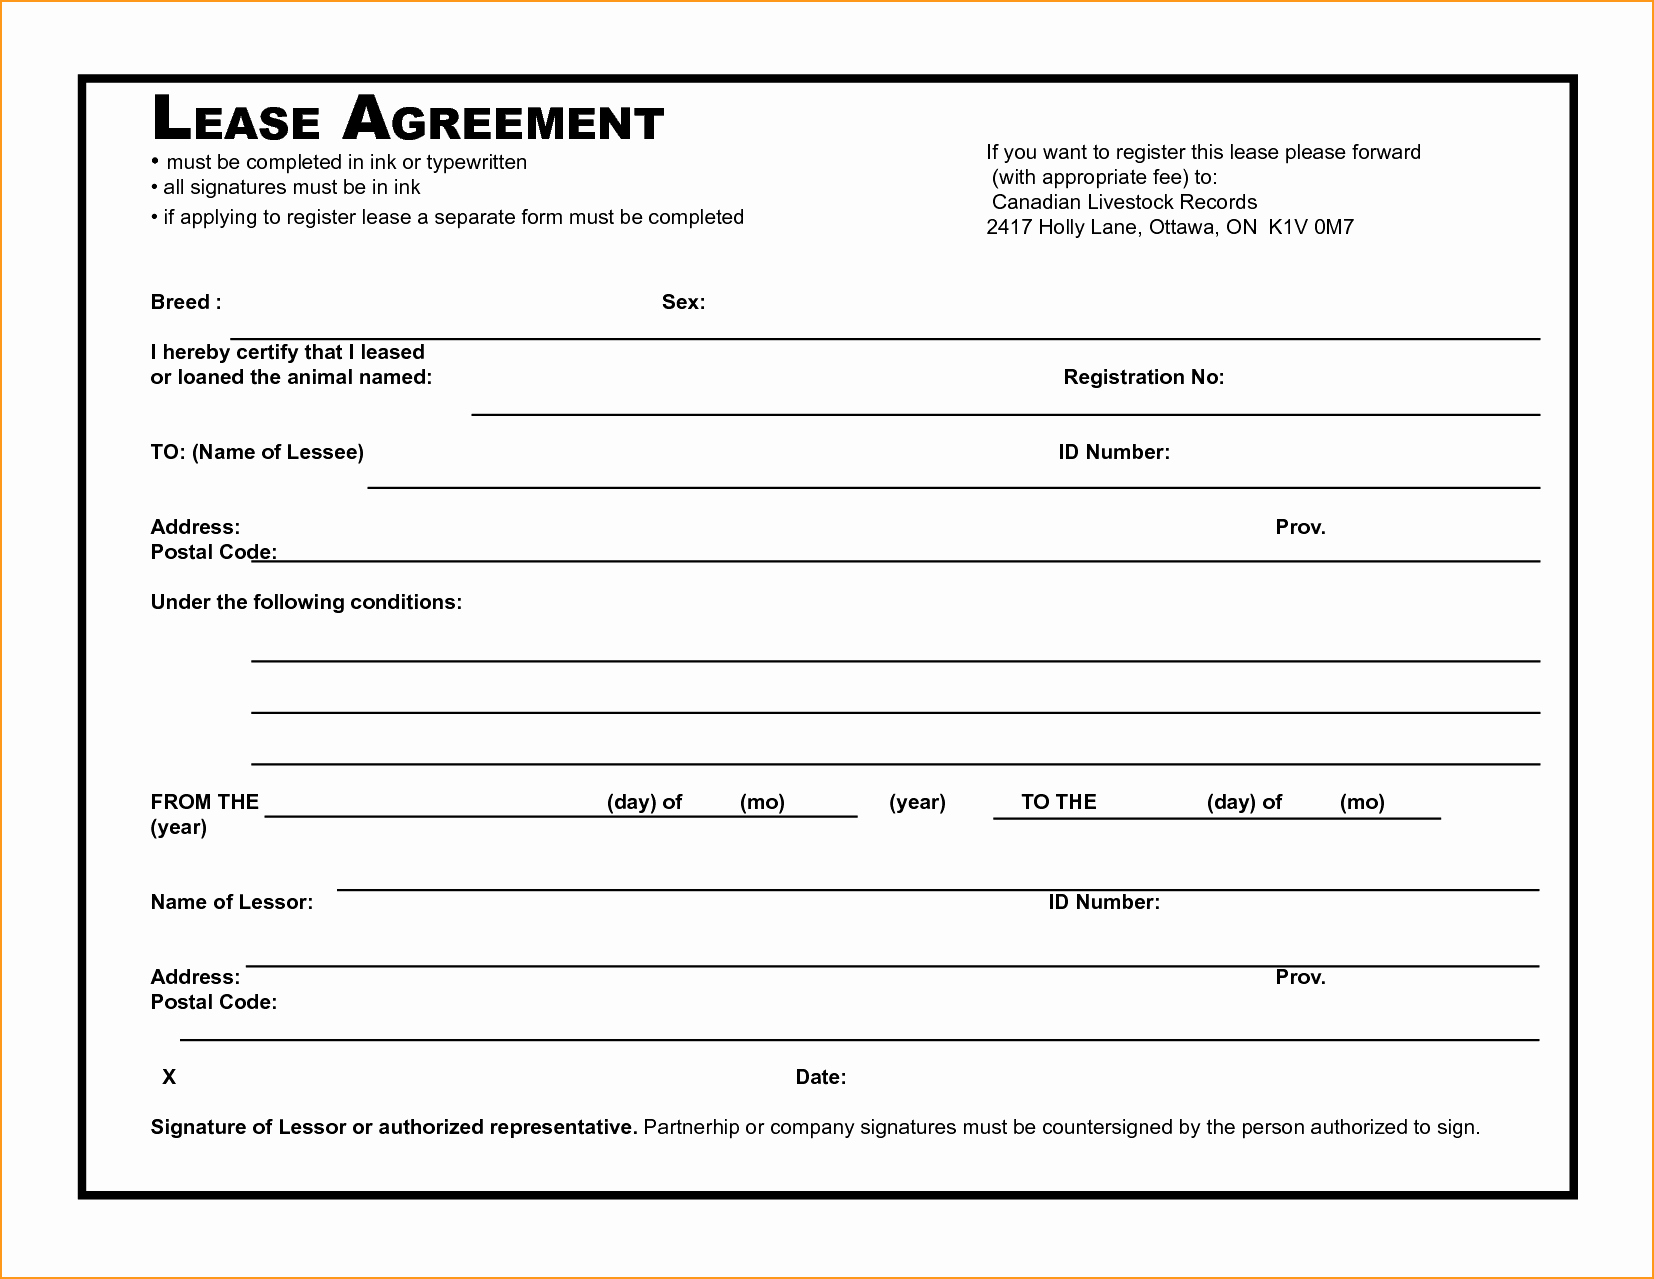 Lease Agreement Word Doc Portablegasgrillweber